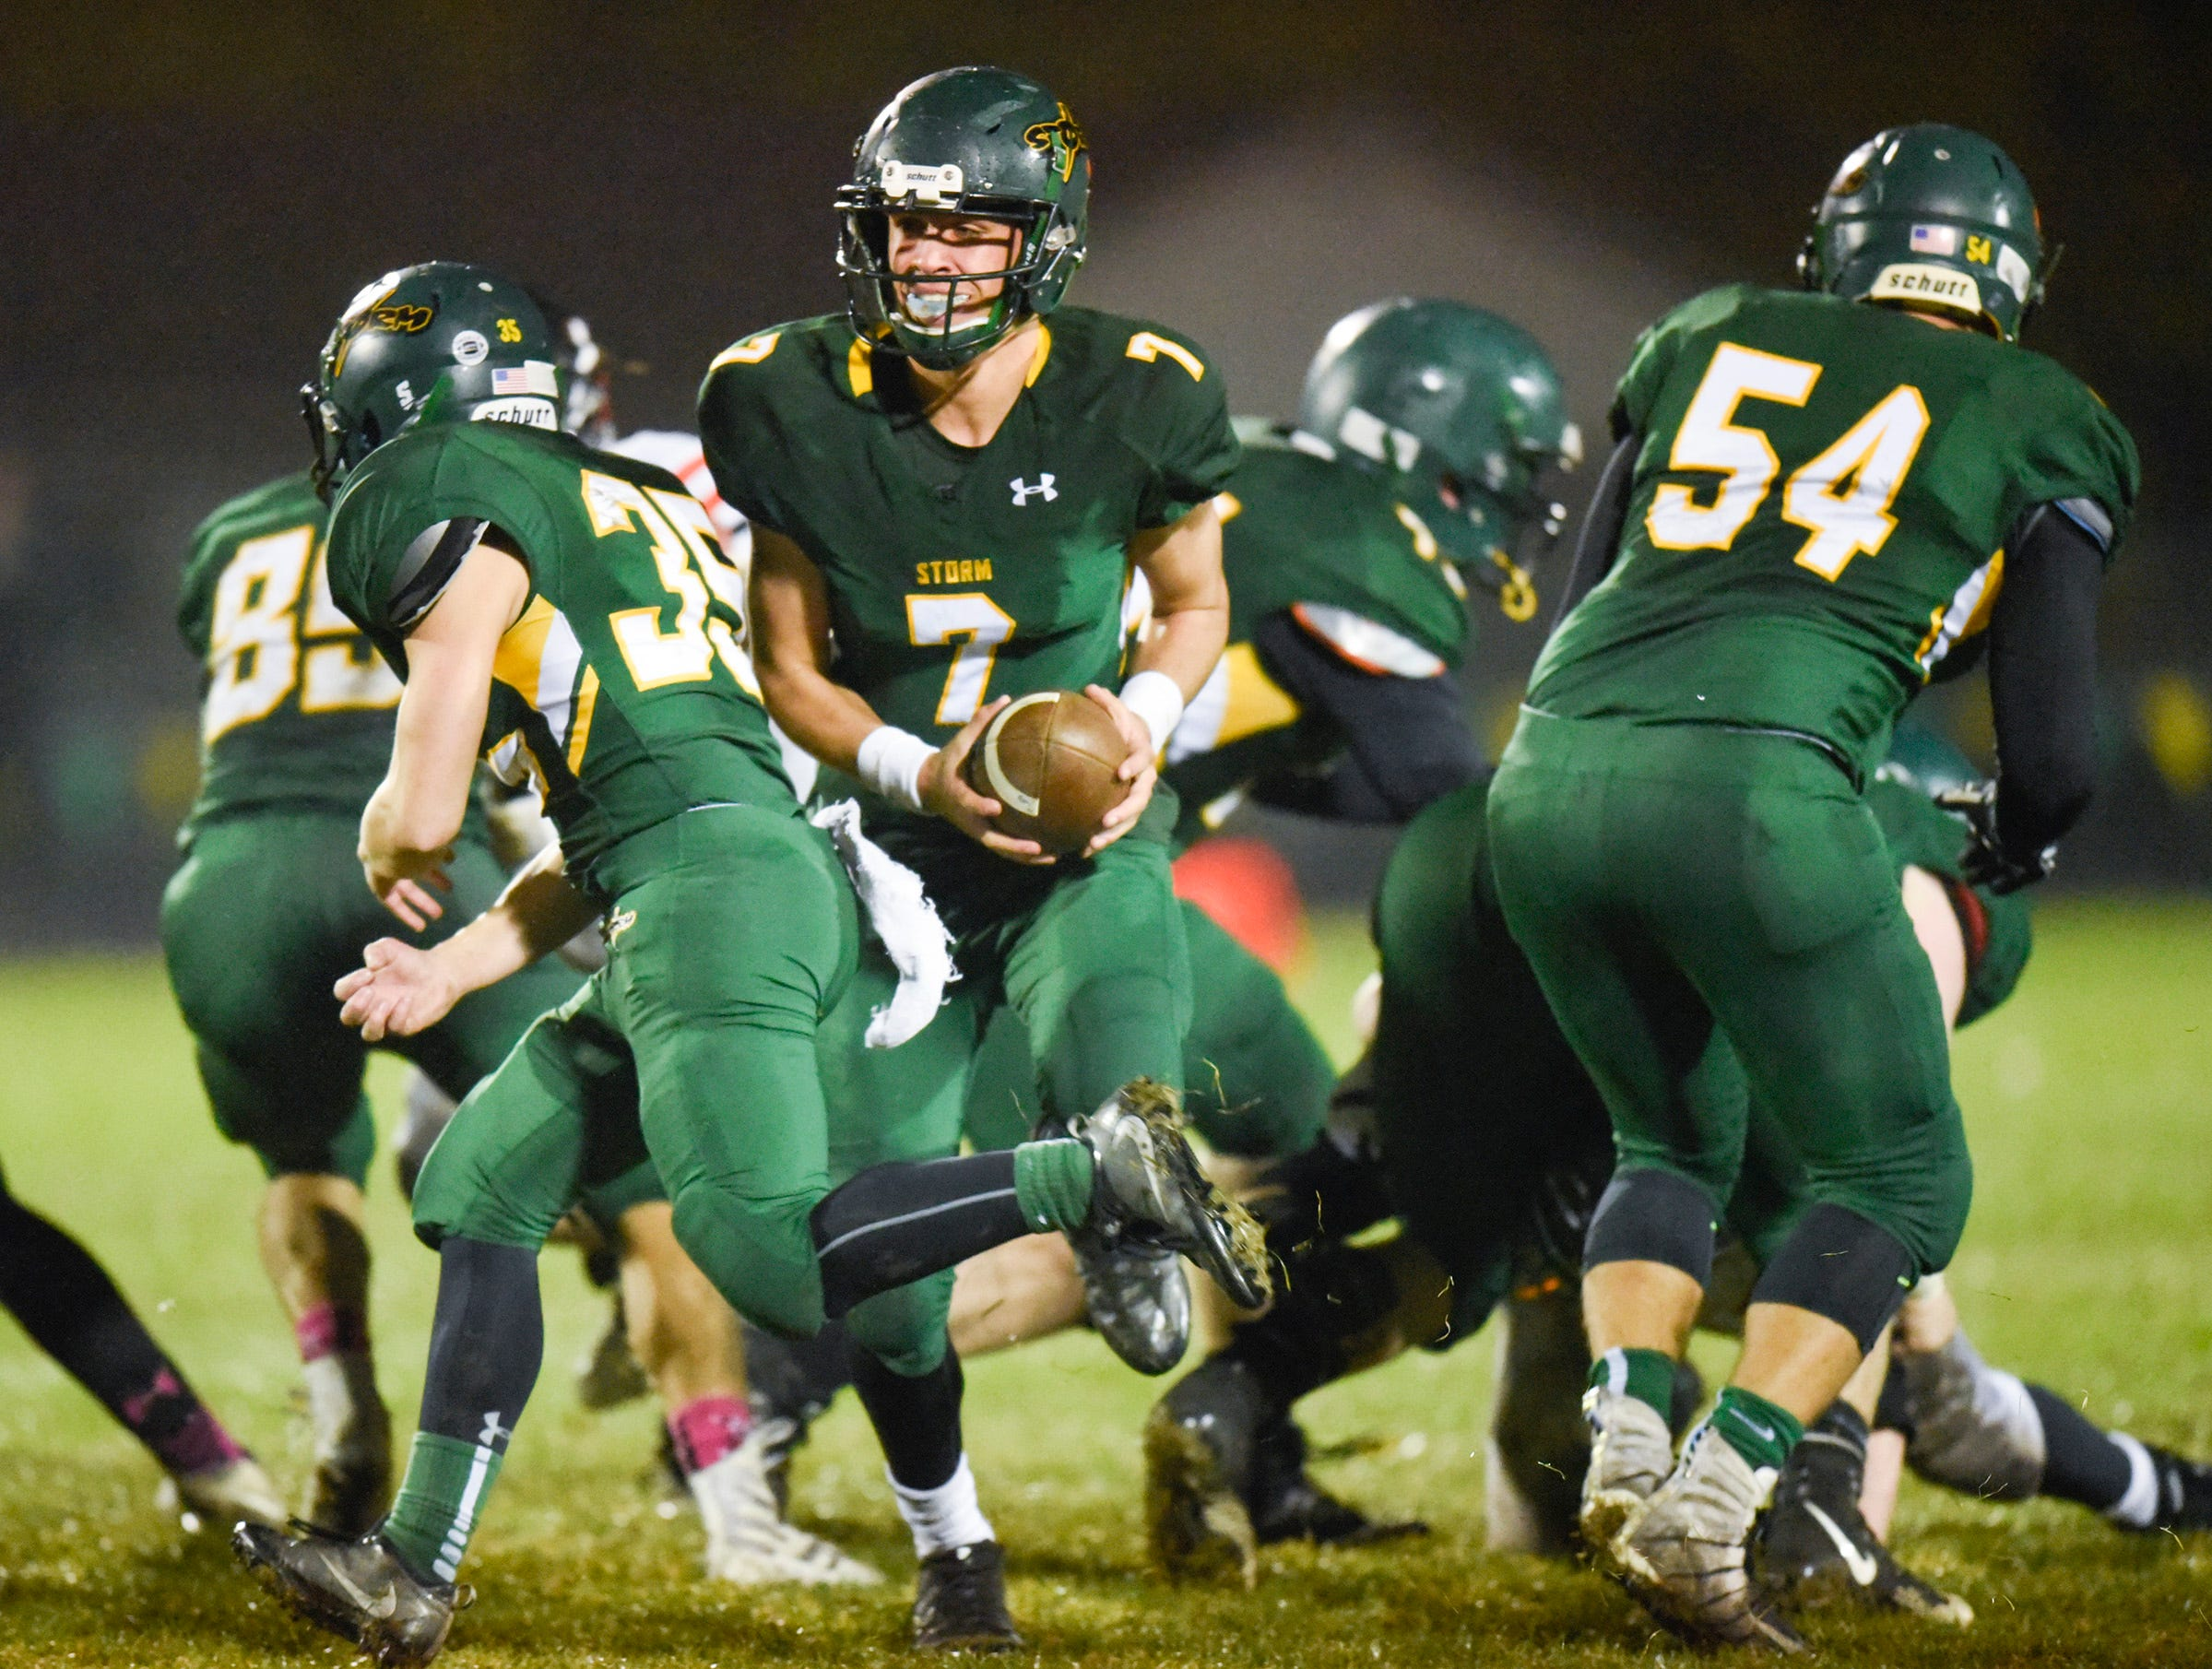 Sauk Rapids quarterback Cade Milton-Baumgardner rolls out with the ball against Tech during the first half Friday, Oct. 5, in Sauk Rapids.